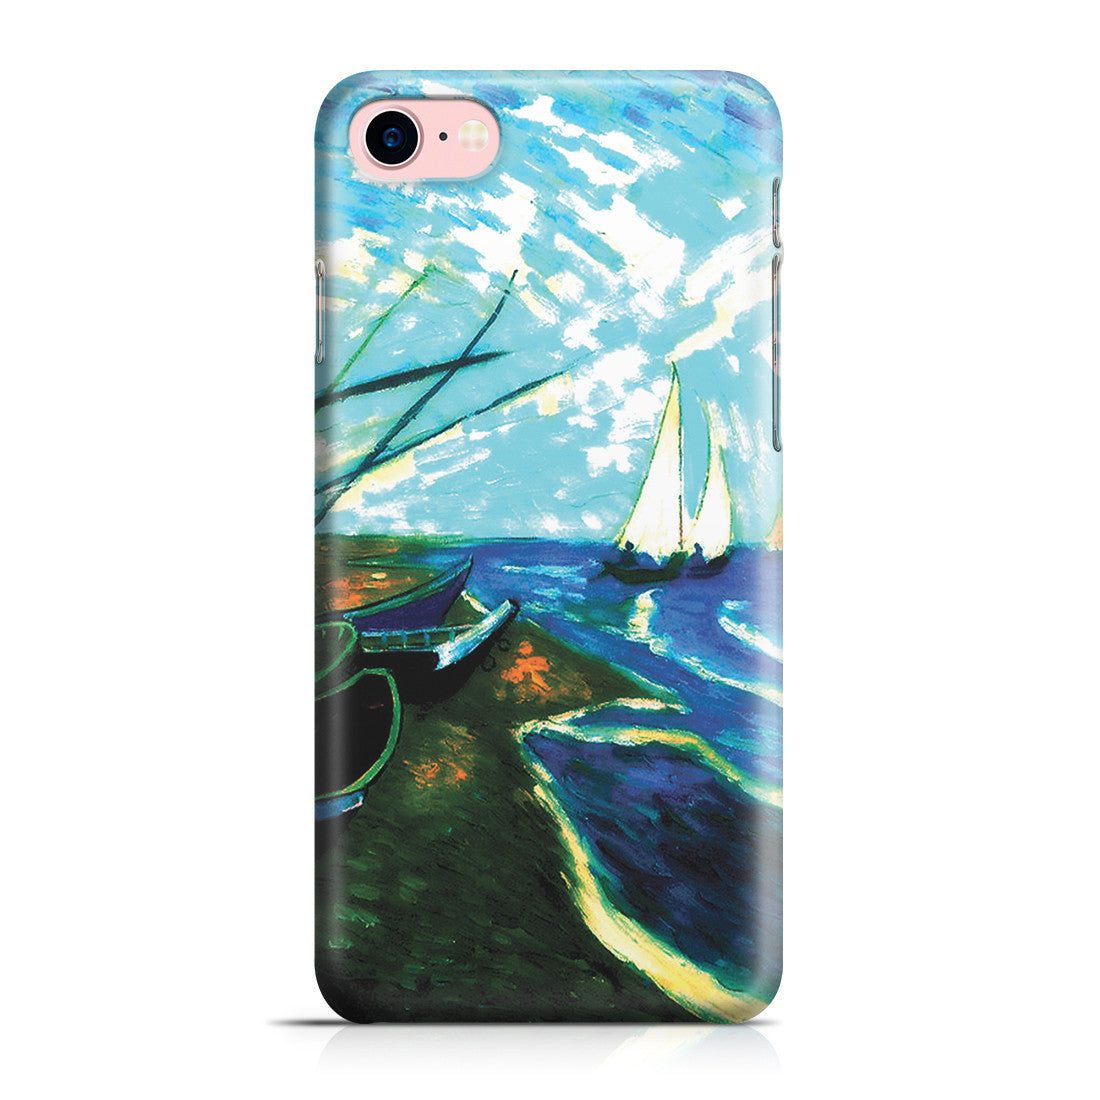 iphone 6 case fishing